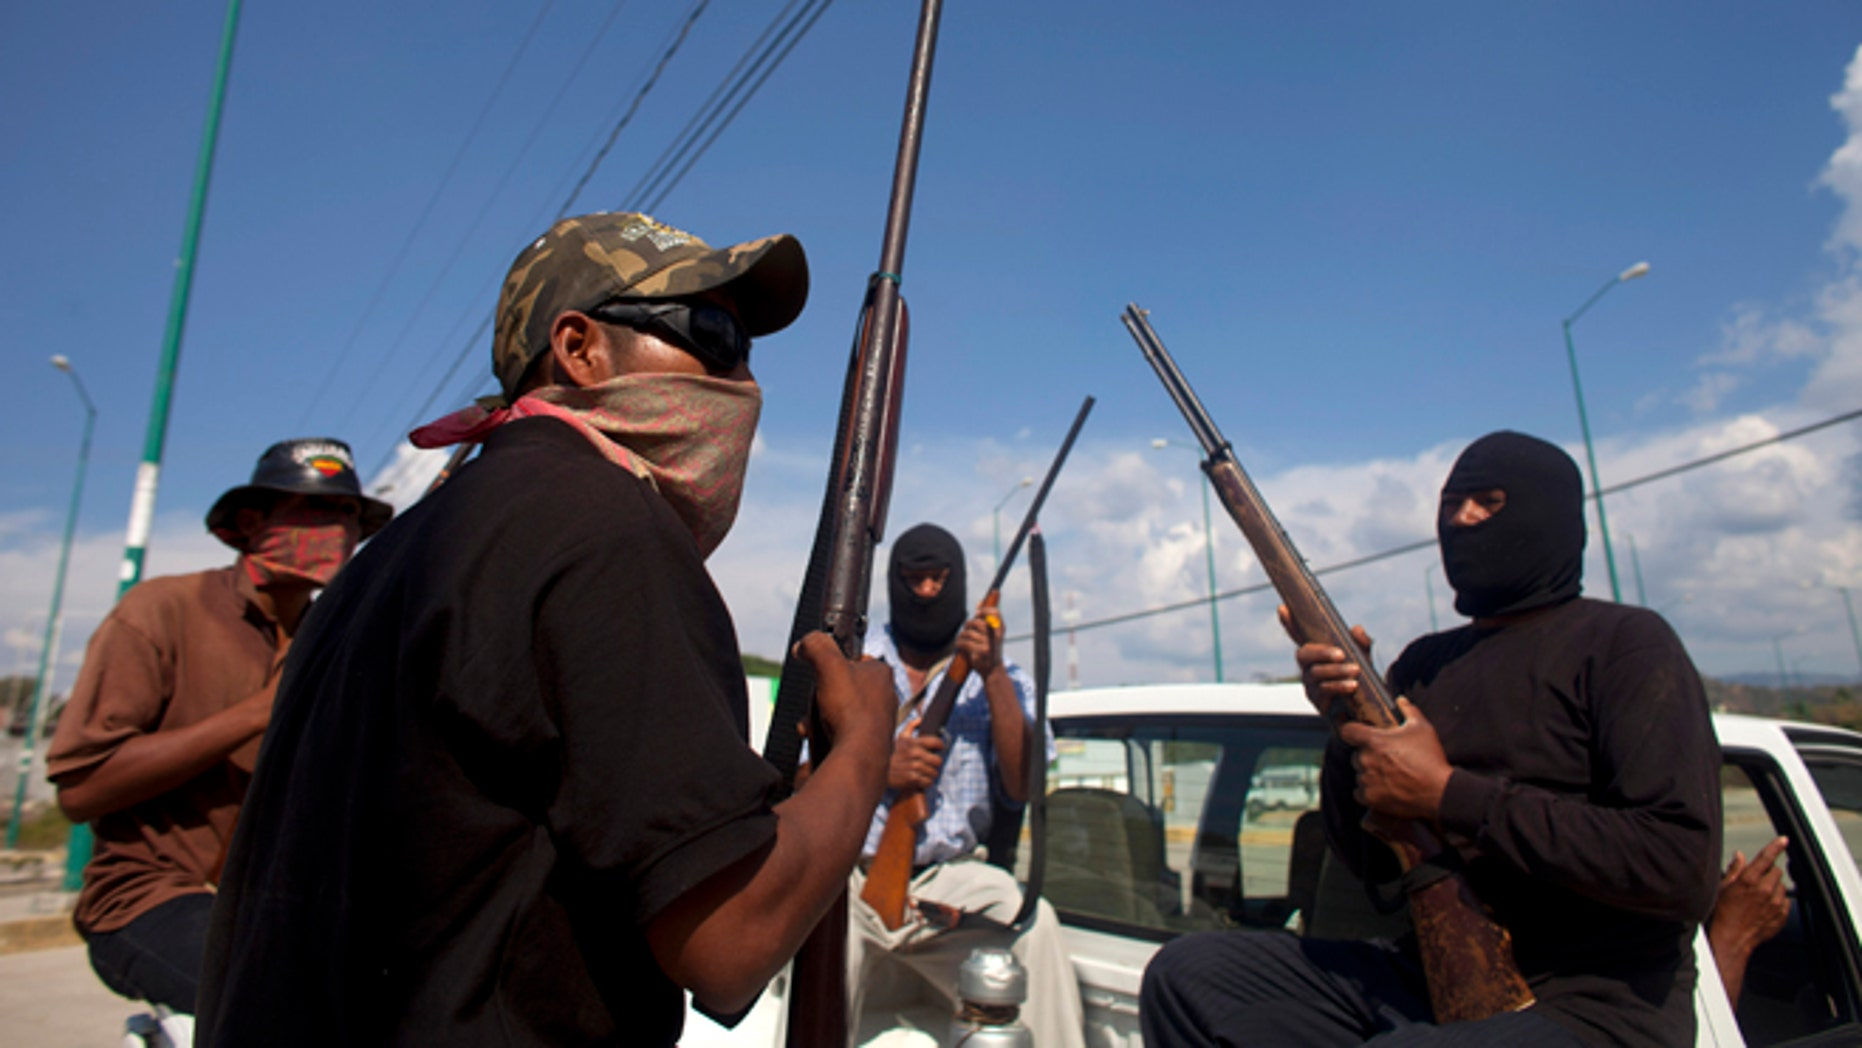 Jan. 18, 2013: In this photo, masked and armed men sit in the back of a pick-up truck at the entrance to the town of Ayutla, Mexico.  Hundreds of  men in the southern Mexico state of Guerrero have taken up arms to defend their villages against drug gangs, a vigilante movement born of frustration at extortion, killings and kidnappings in a region wracked by violence.